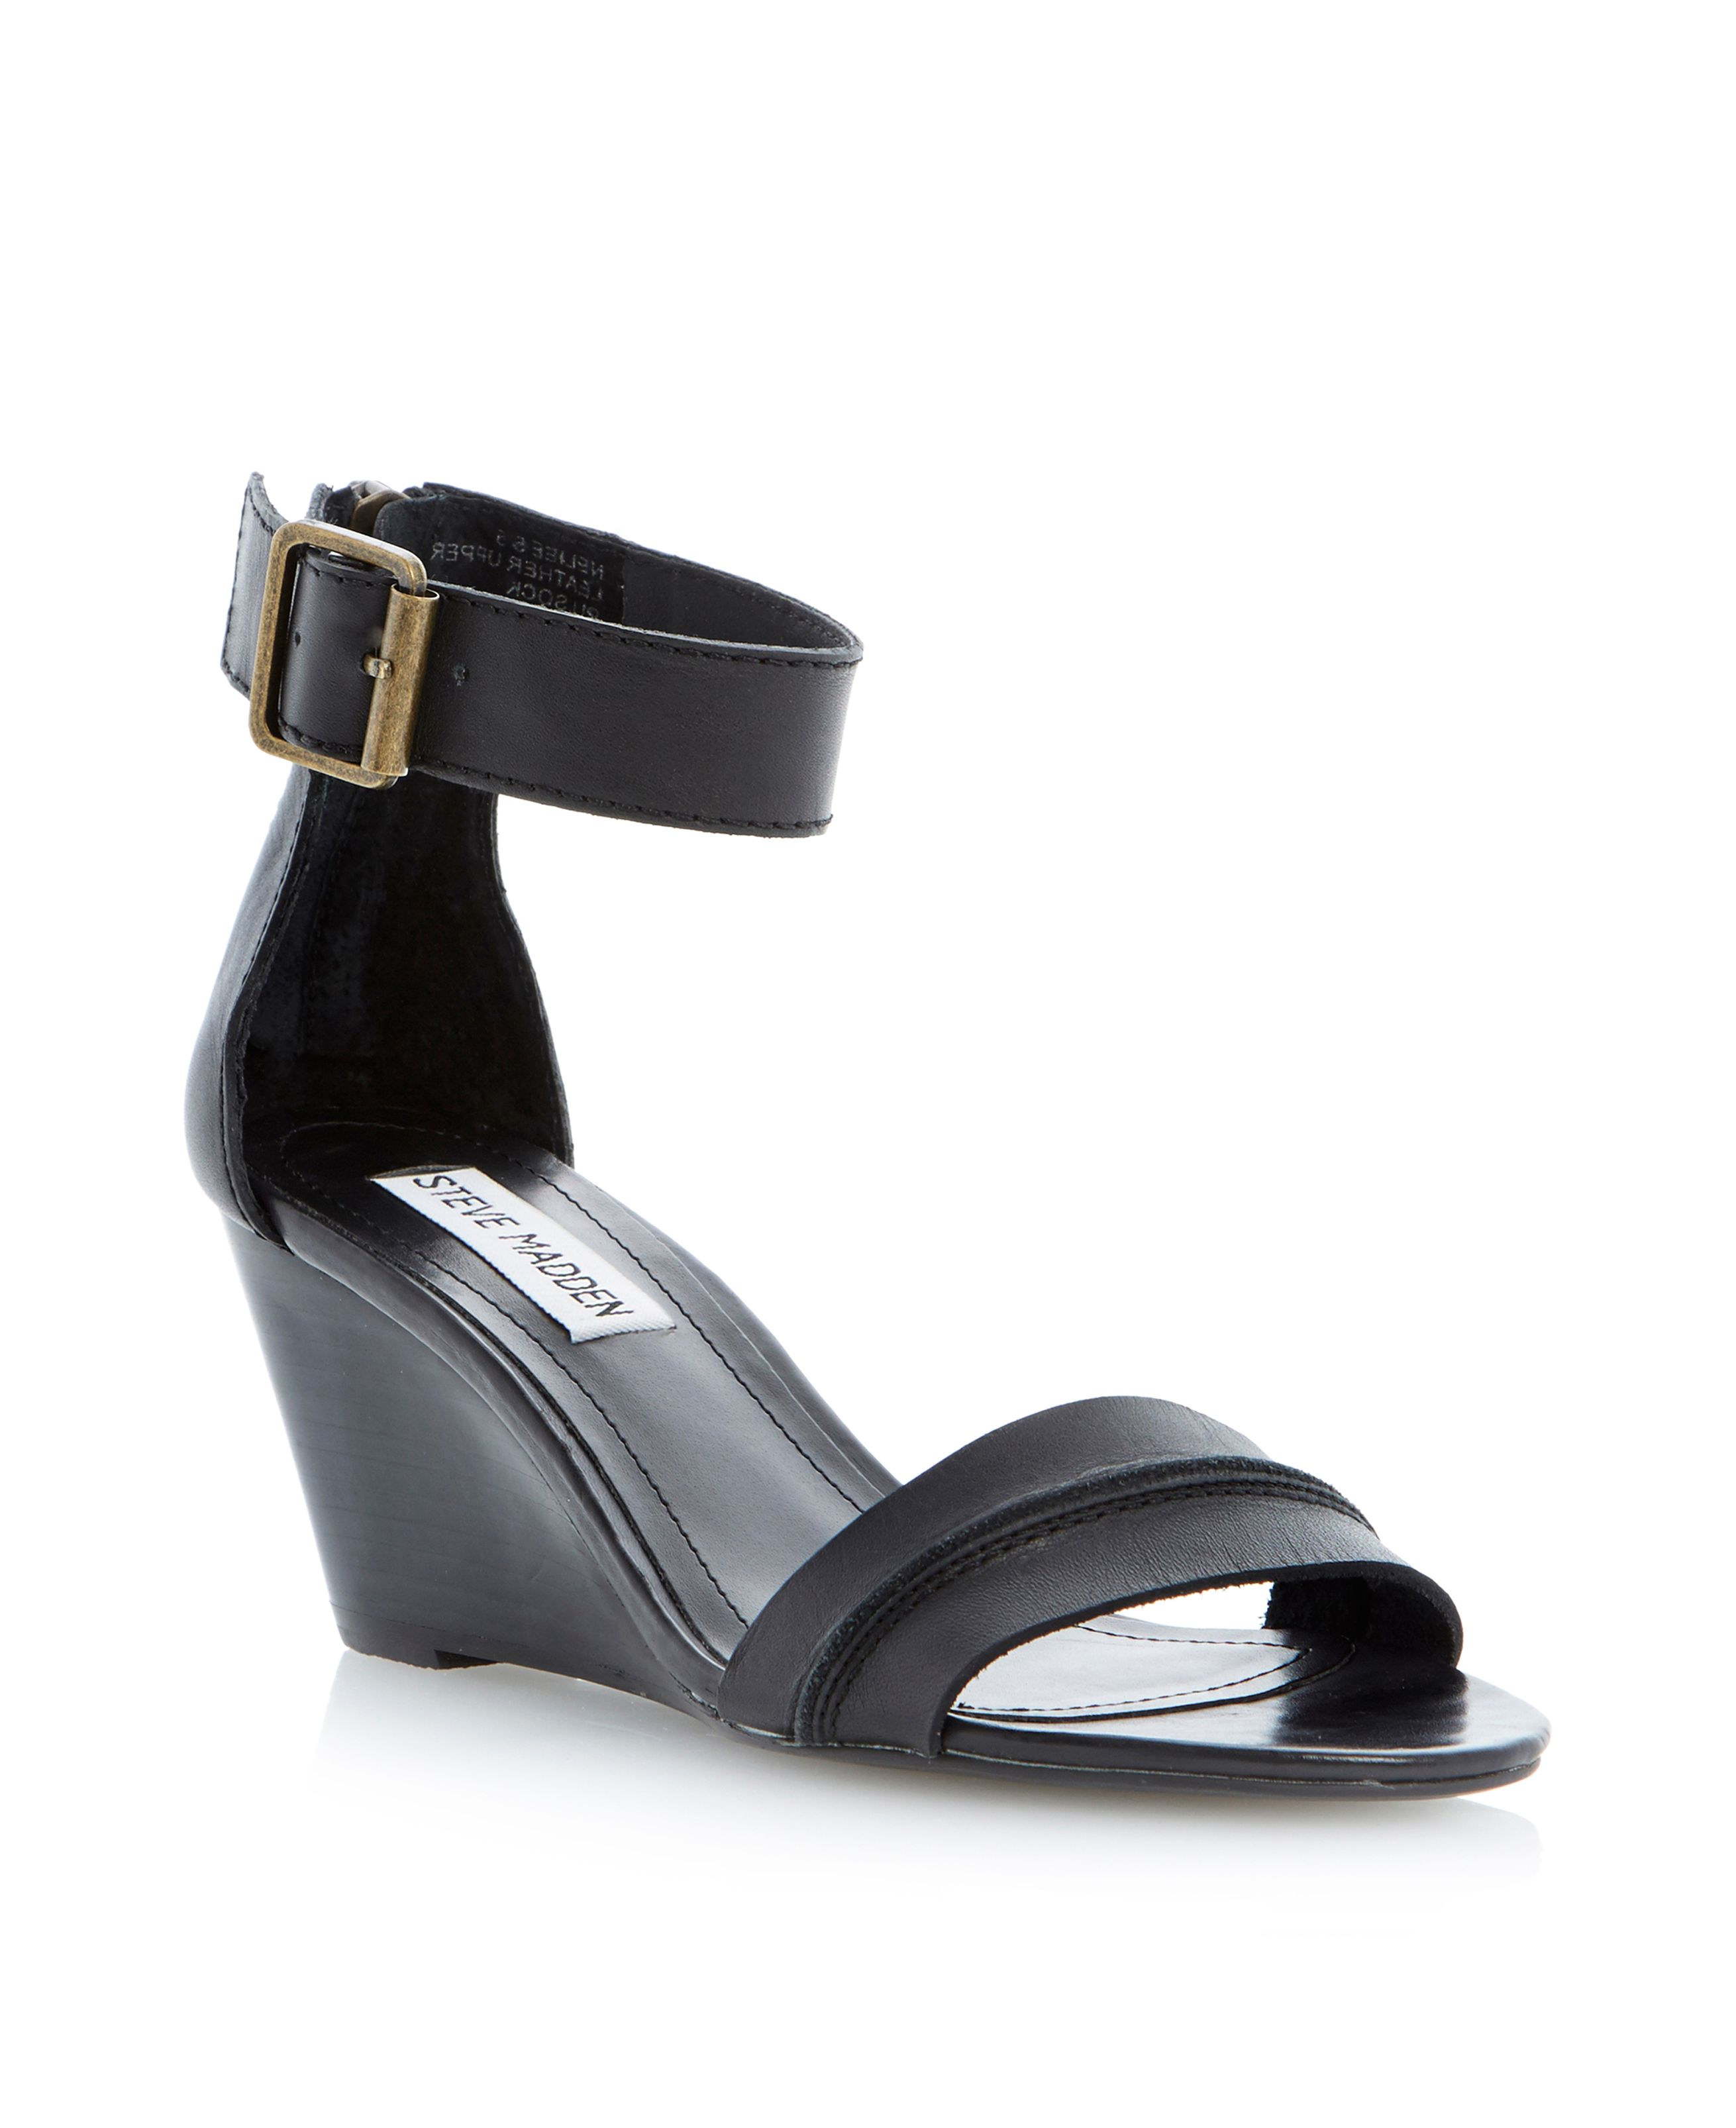 Neliee buckle ankle strap wedge sandals